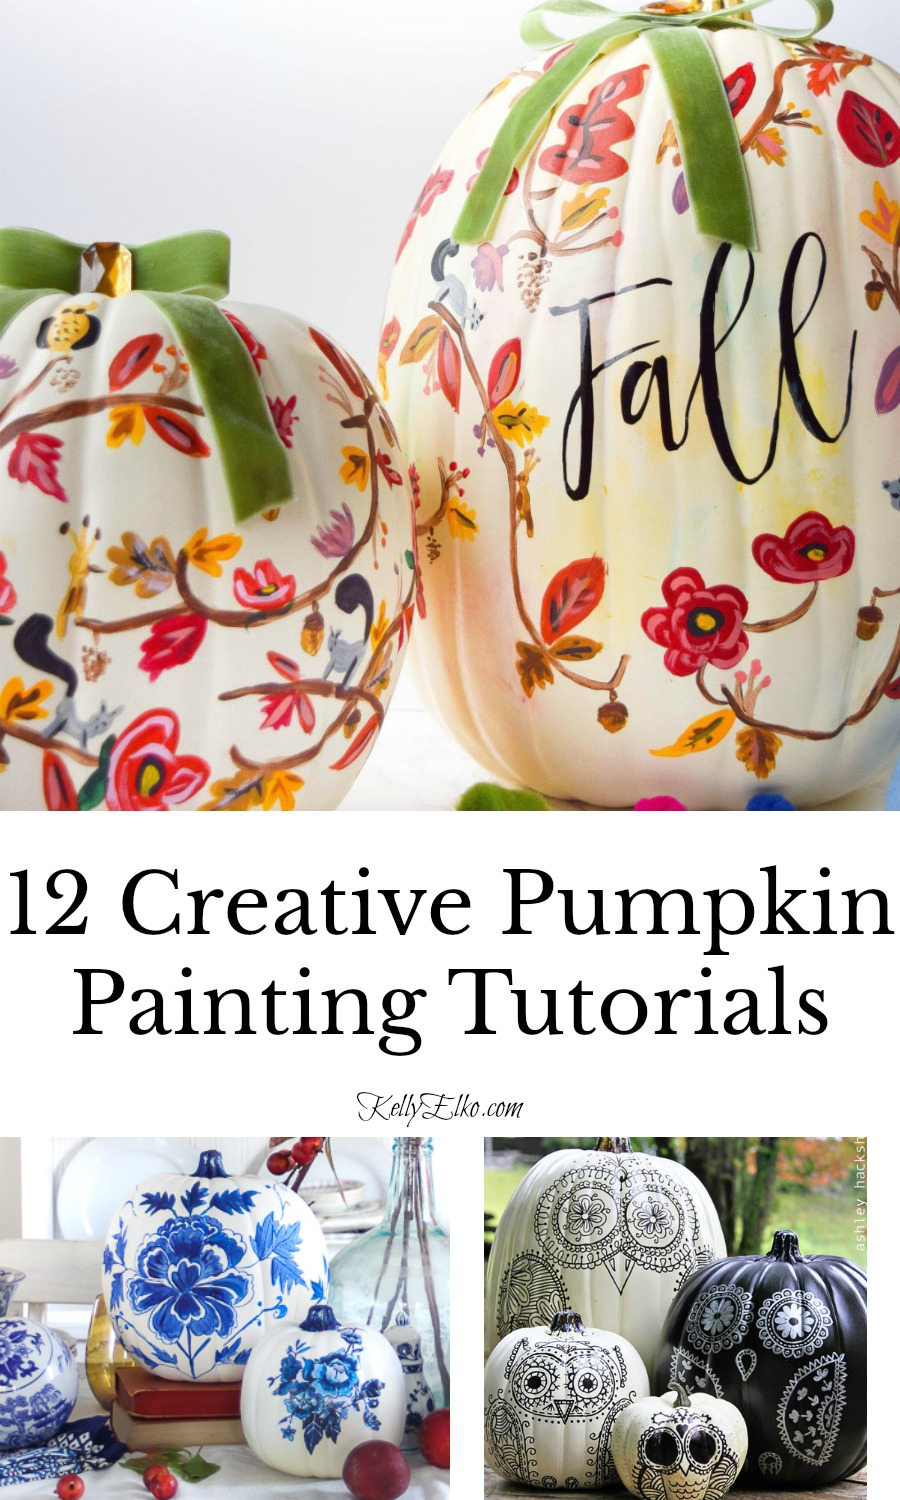 12 Creative Pumpkin Painting Tutorials with Instructions! kellyelko.com #pumpkins #fallcrafts #fallcrafting #pumpkincrafts #diyideas #paintingtutorials #paintcrafts